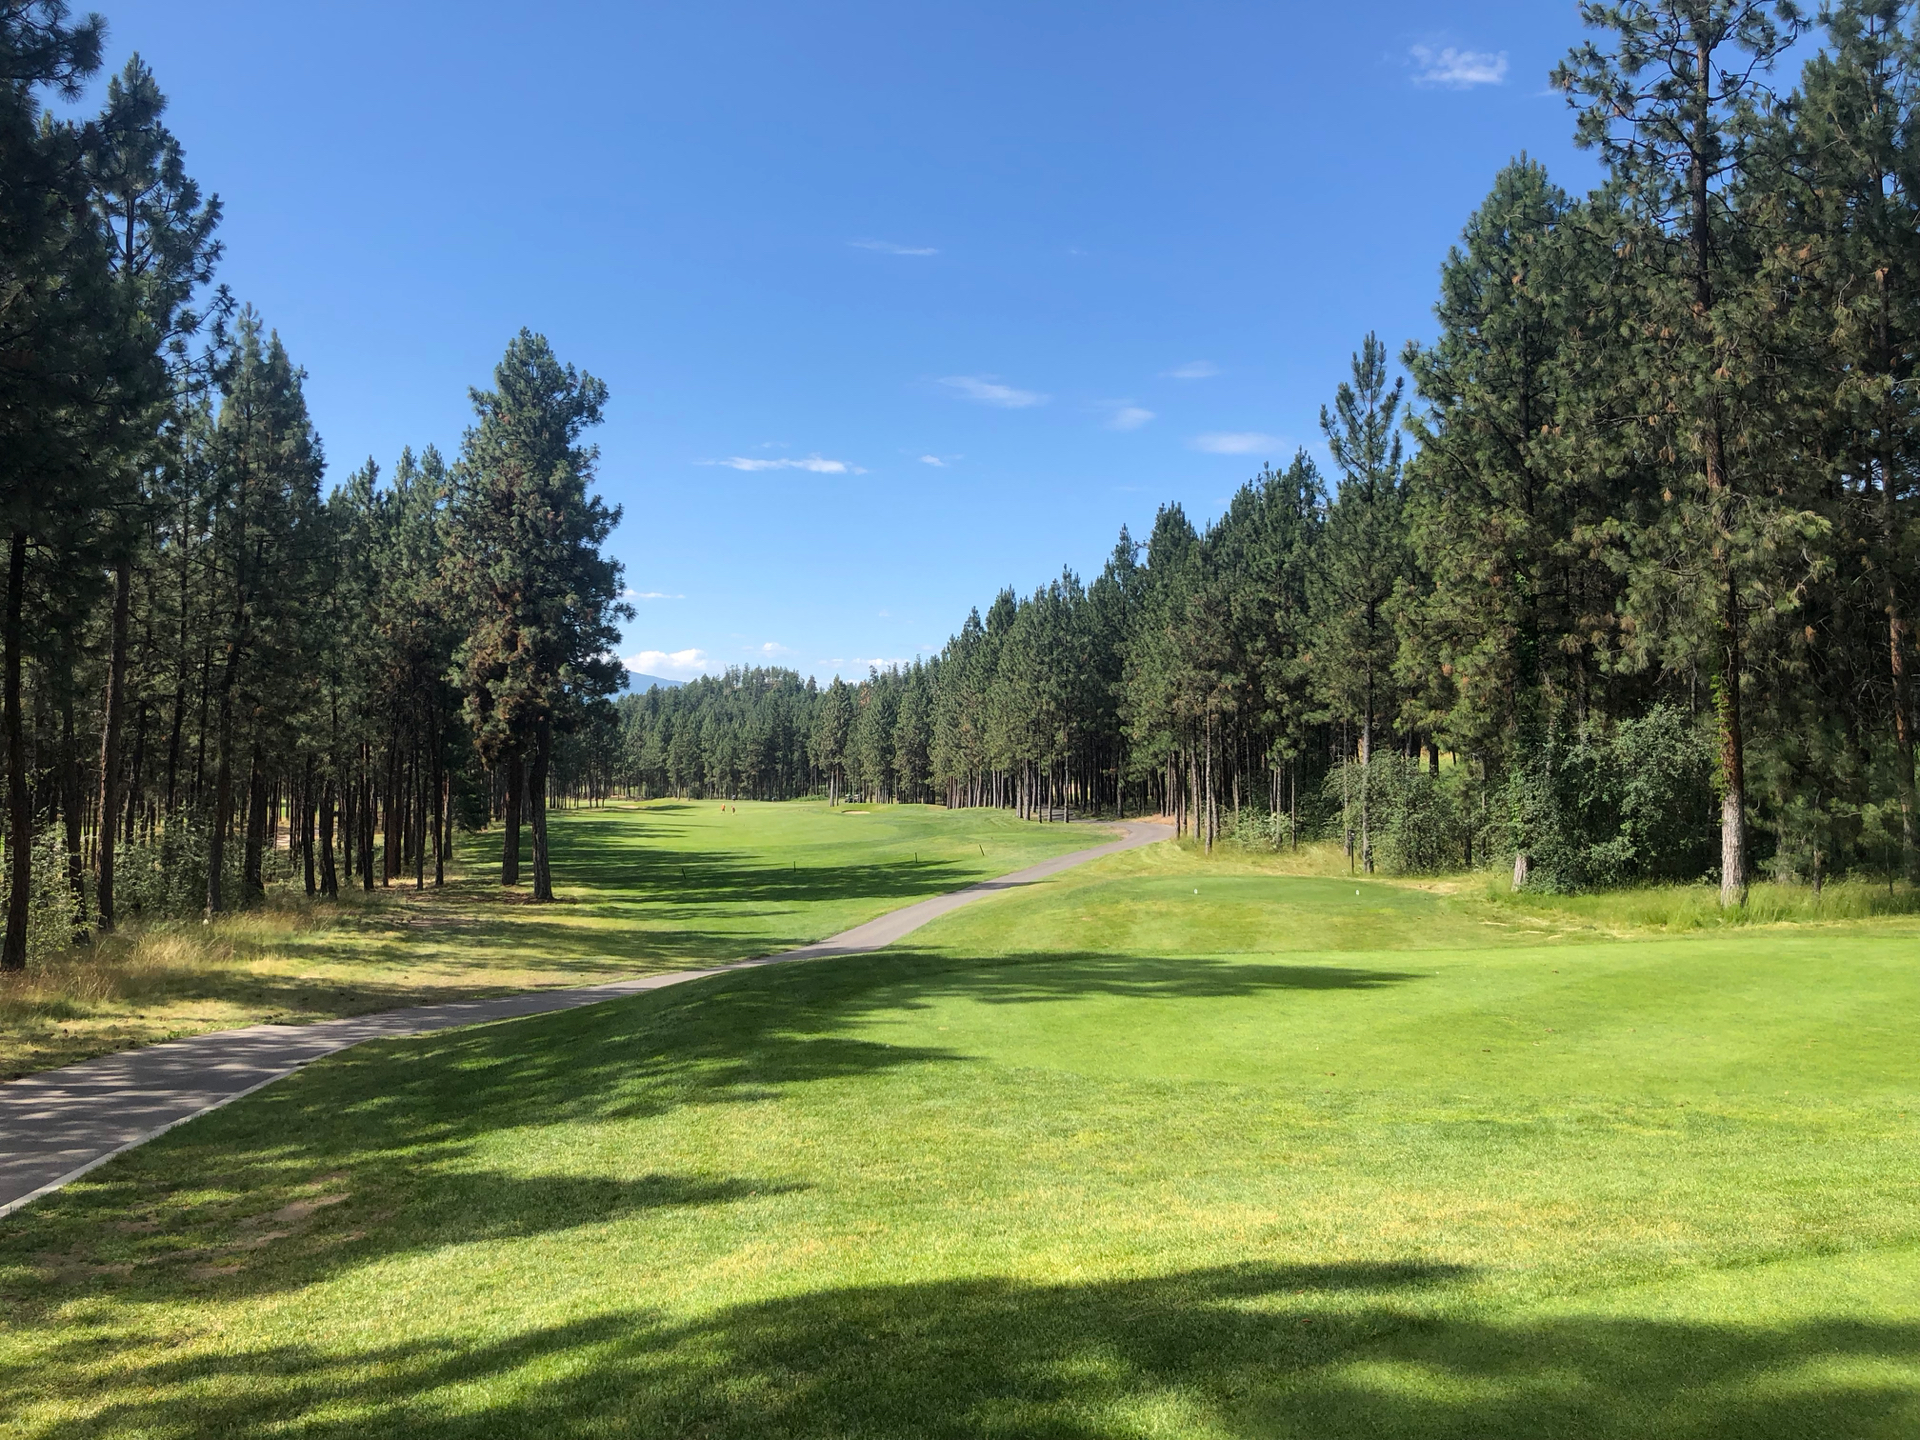 This golf course was much more in the forest, which was a nice change.